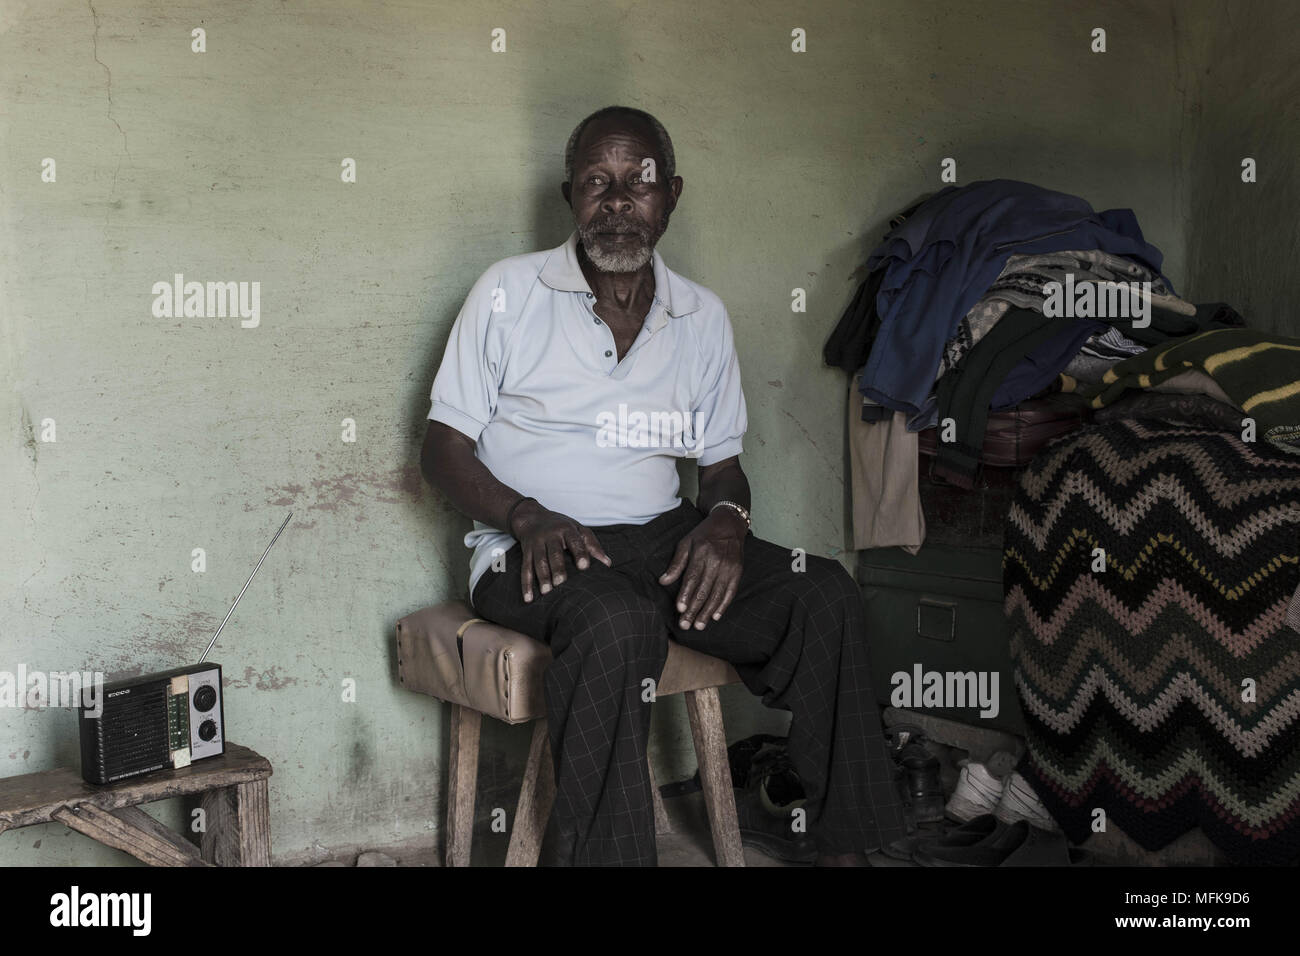 January 12 2018 Matatiele Eastern Cape South Africa Thabo 72 Wiring A House In Sits His Mud And Listens To The Radio He Complains That There Is Nothing